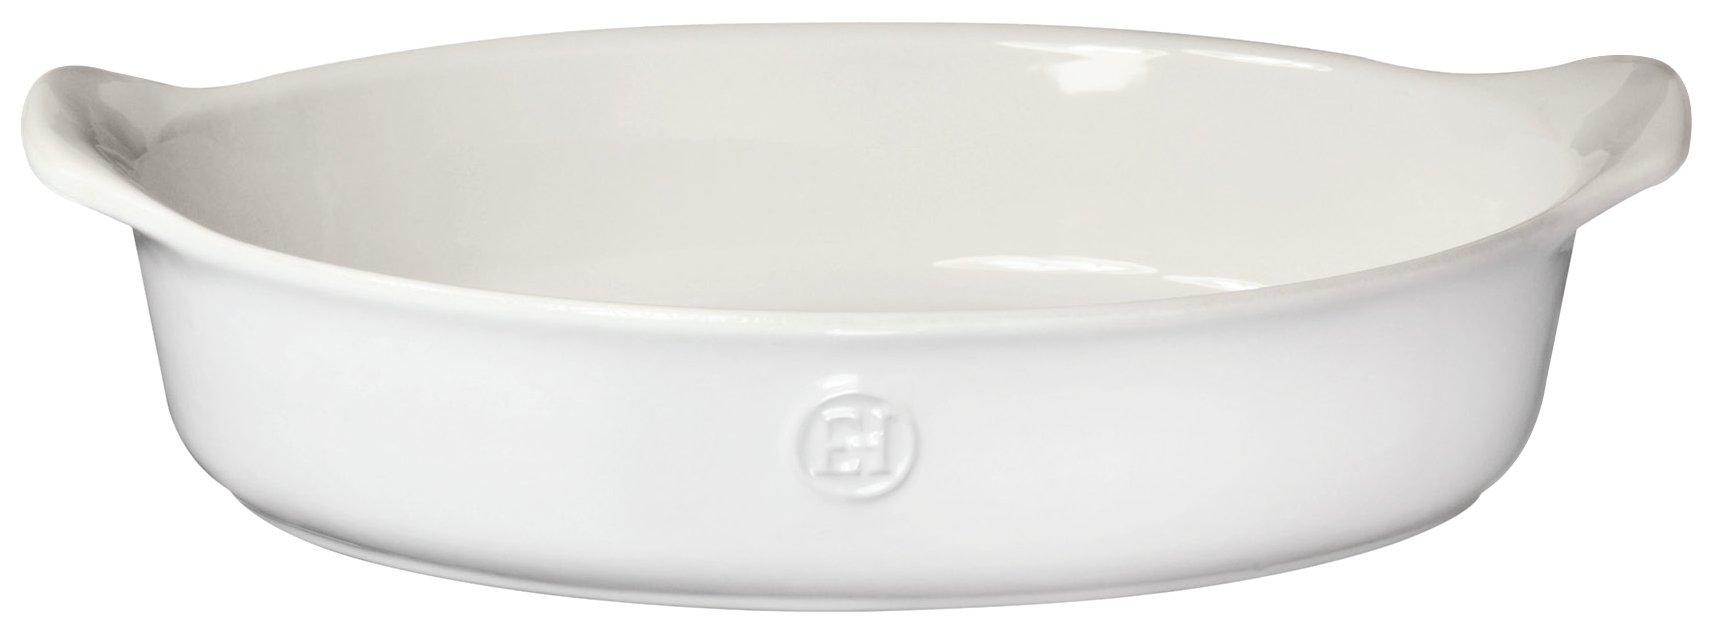 Emile Henry 239028 HR Ceramic Small Oval Baker, Sugar